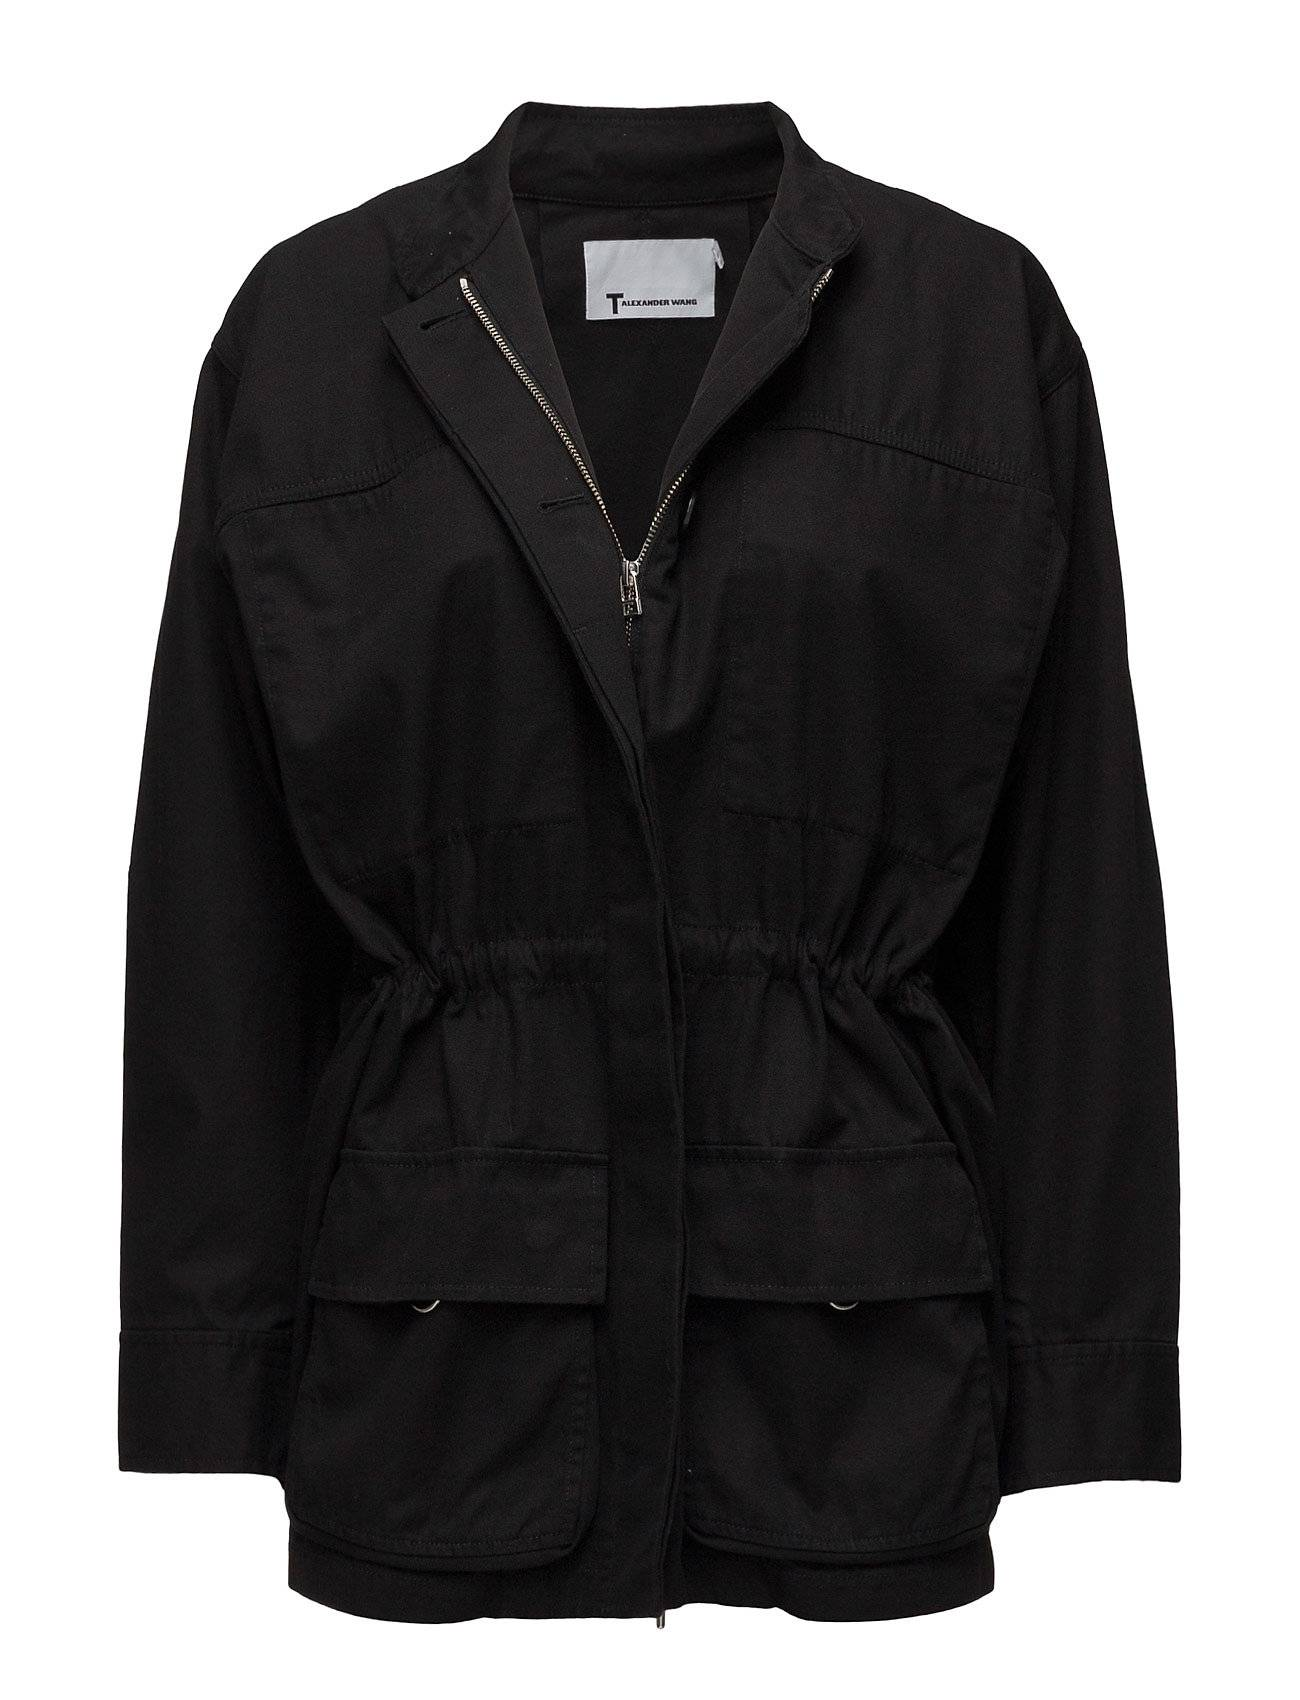 T by Alexander Wang L/S Coat W/ Drawcord